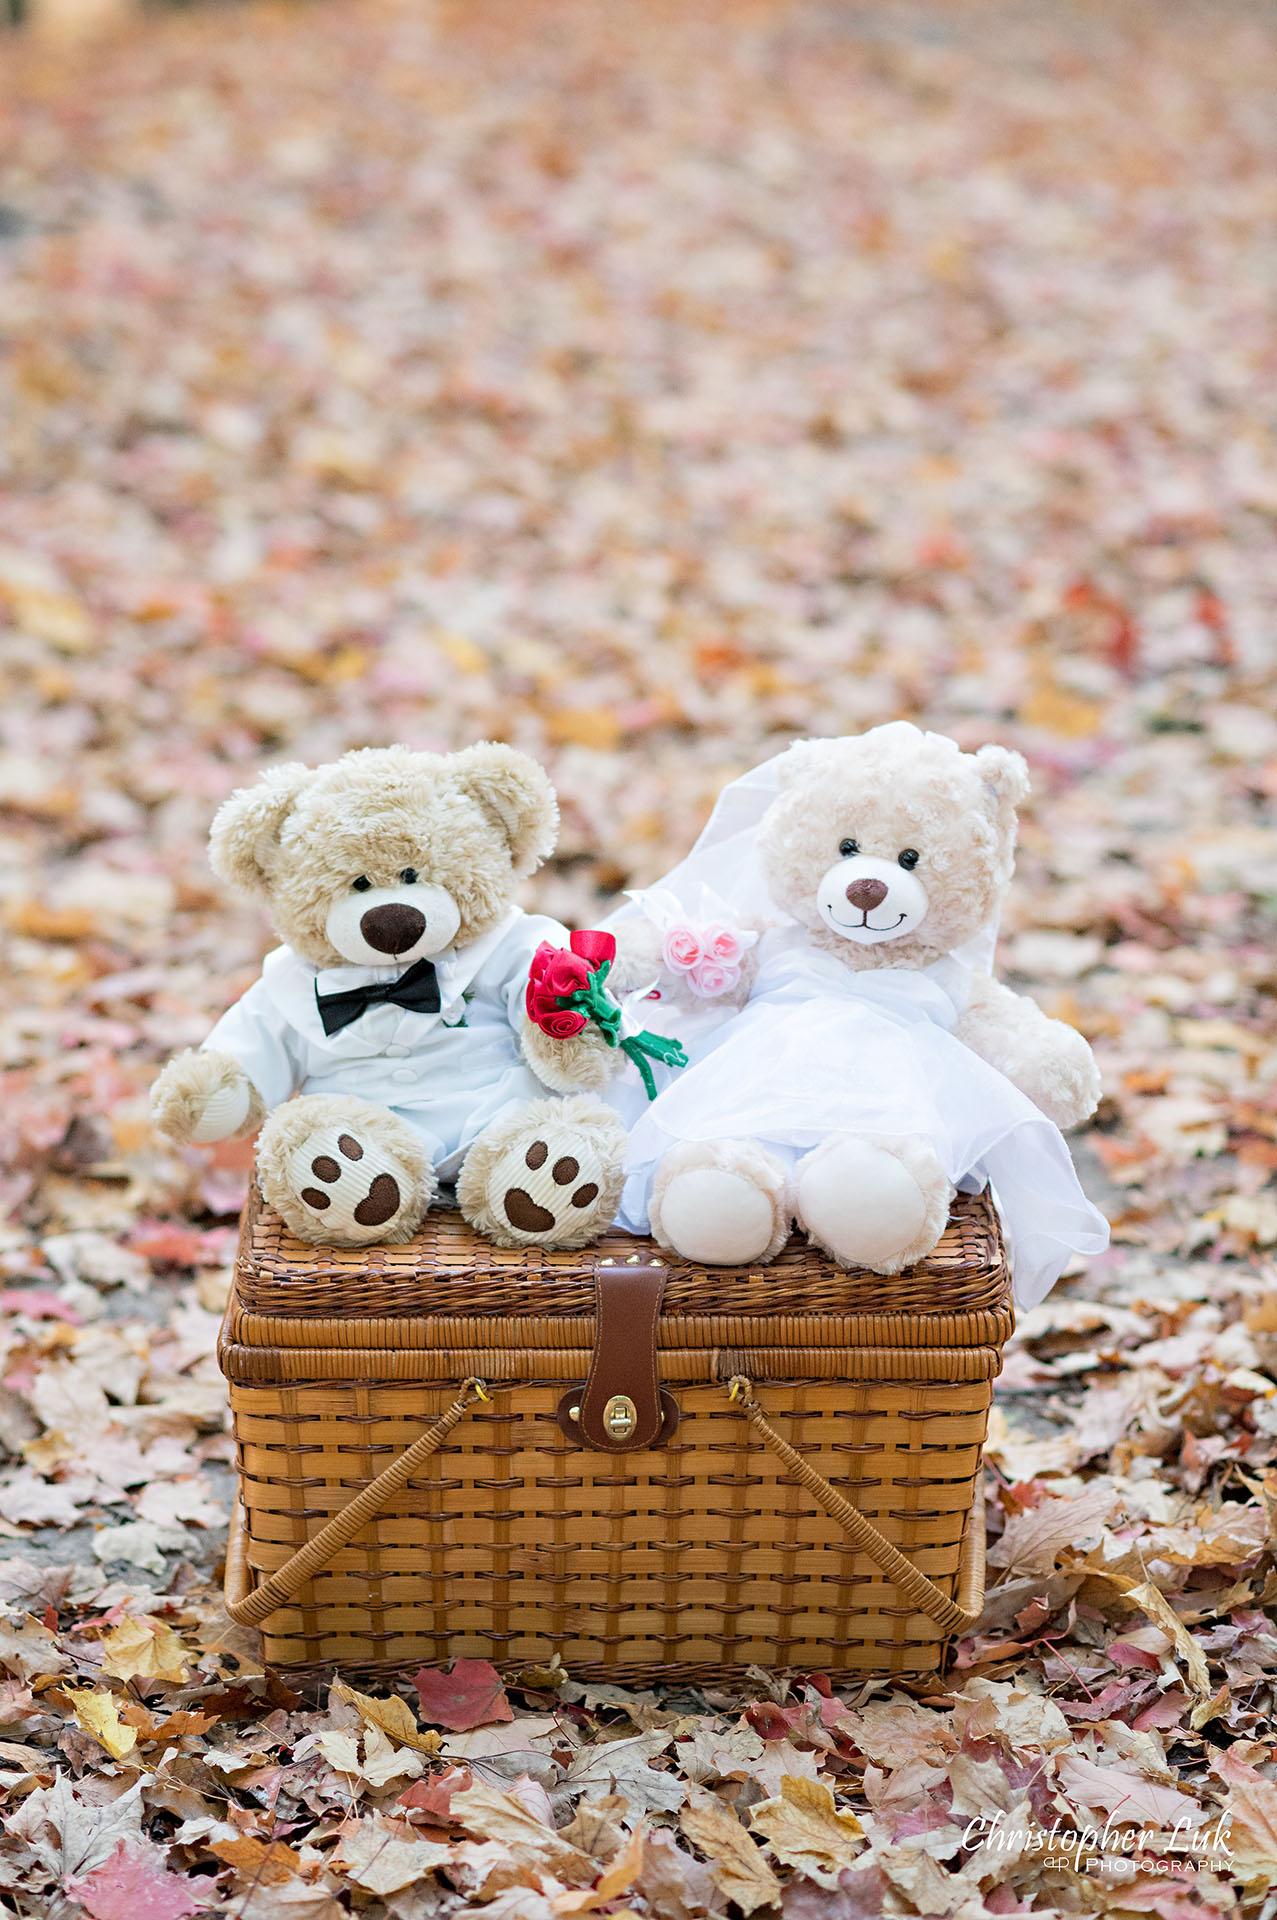 Christopher Luk Toronto Wedding Engagement Session Photographer Autumn Fall Leaves Natural Candid Photojournalistic Hiking Trail Stuffed Animal WongFu Productions Spencer Bear Picnic Basket Portrait